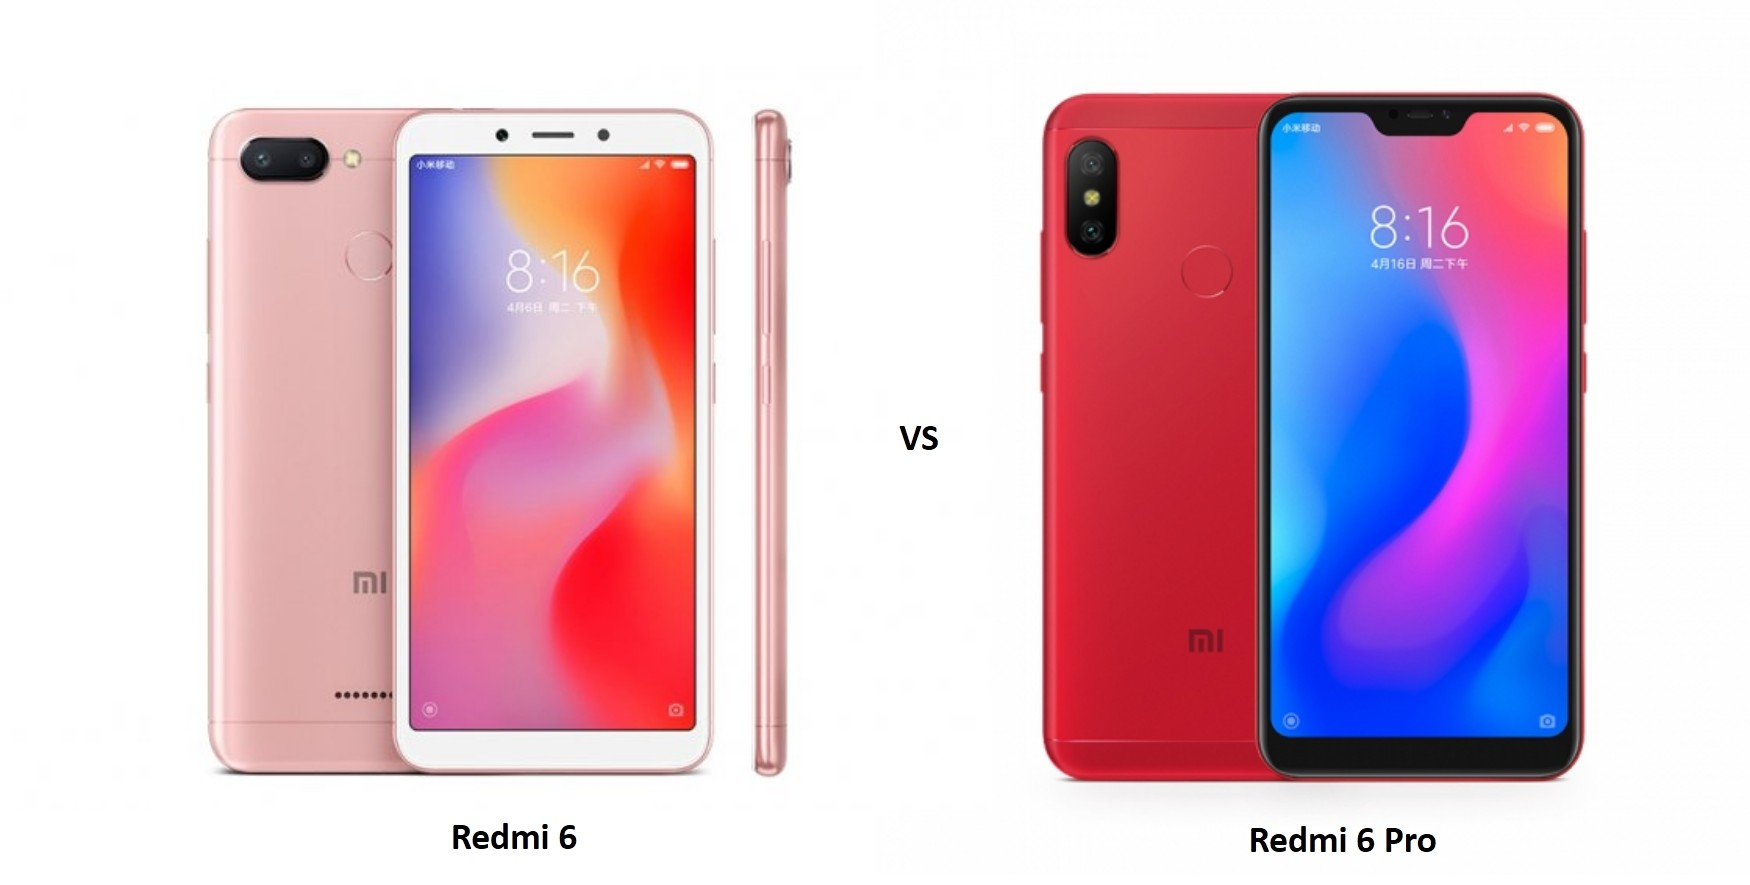 Redmi 6 vs Redmi 6 Pro: Price, Design, Display, Software and Hardware Compared